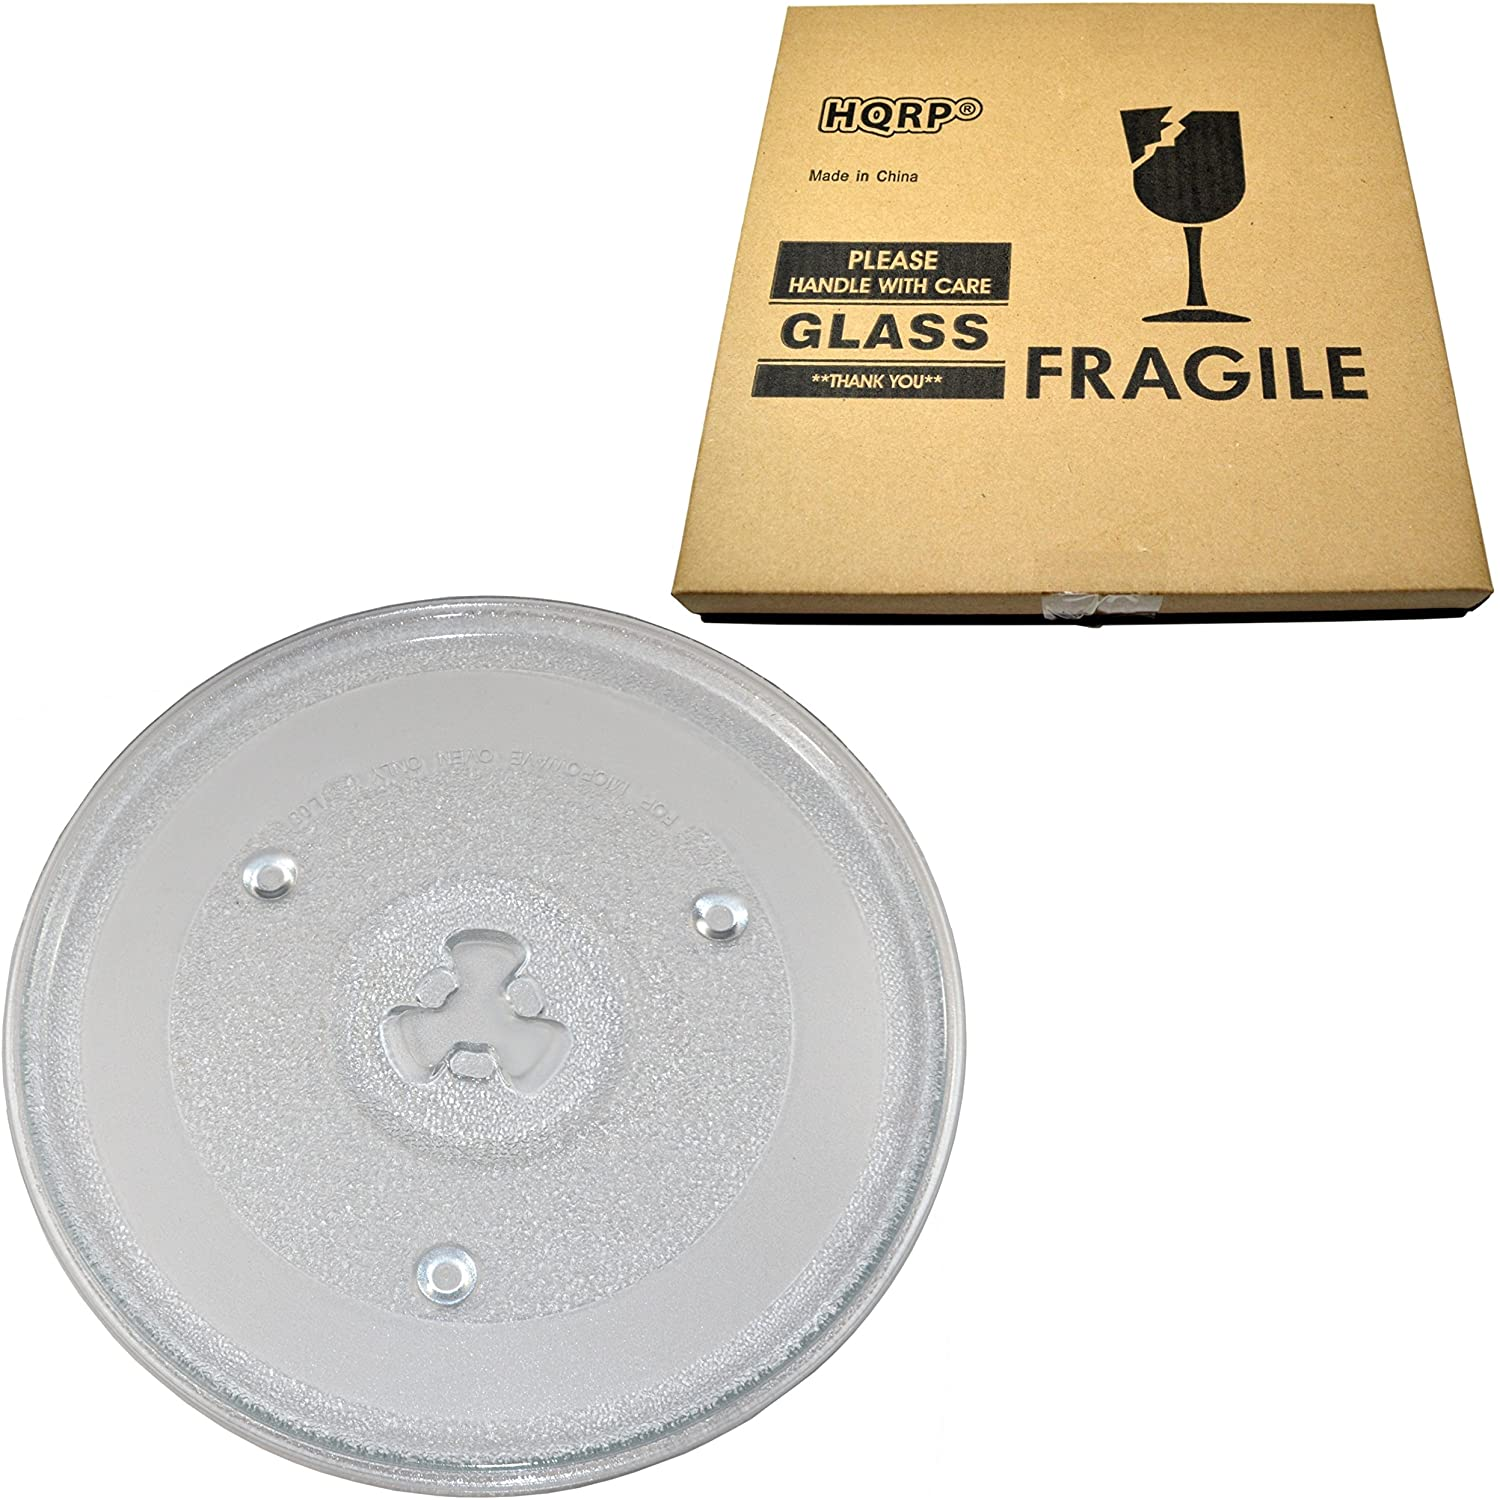 HQRP 10-1/2 inch Glass Turntable Tray compatible with Emerson 252100500497 P23 MW8111SS MW8780SB MW8780SS MW8888 MW8888B MW8977 MW8977B MW8995 MW8997 Microwave Oven Cooking Plate 270mm + HQRP Coaster